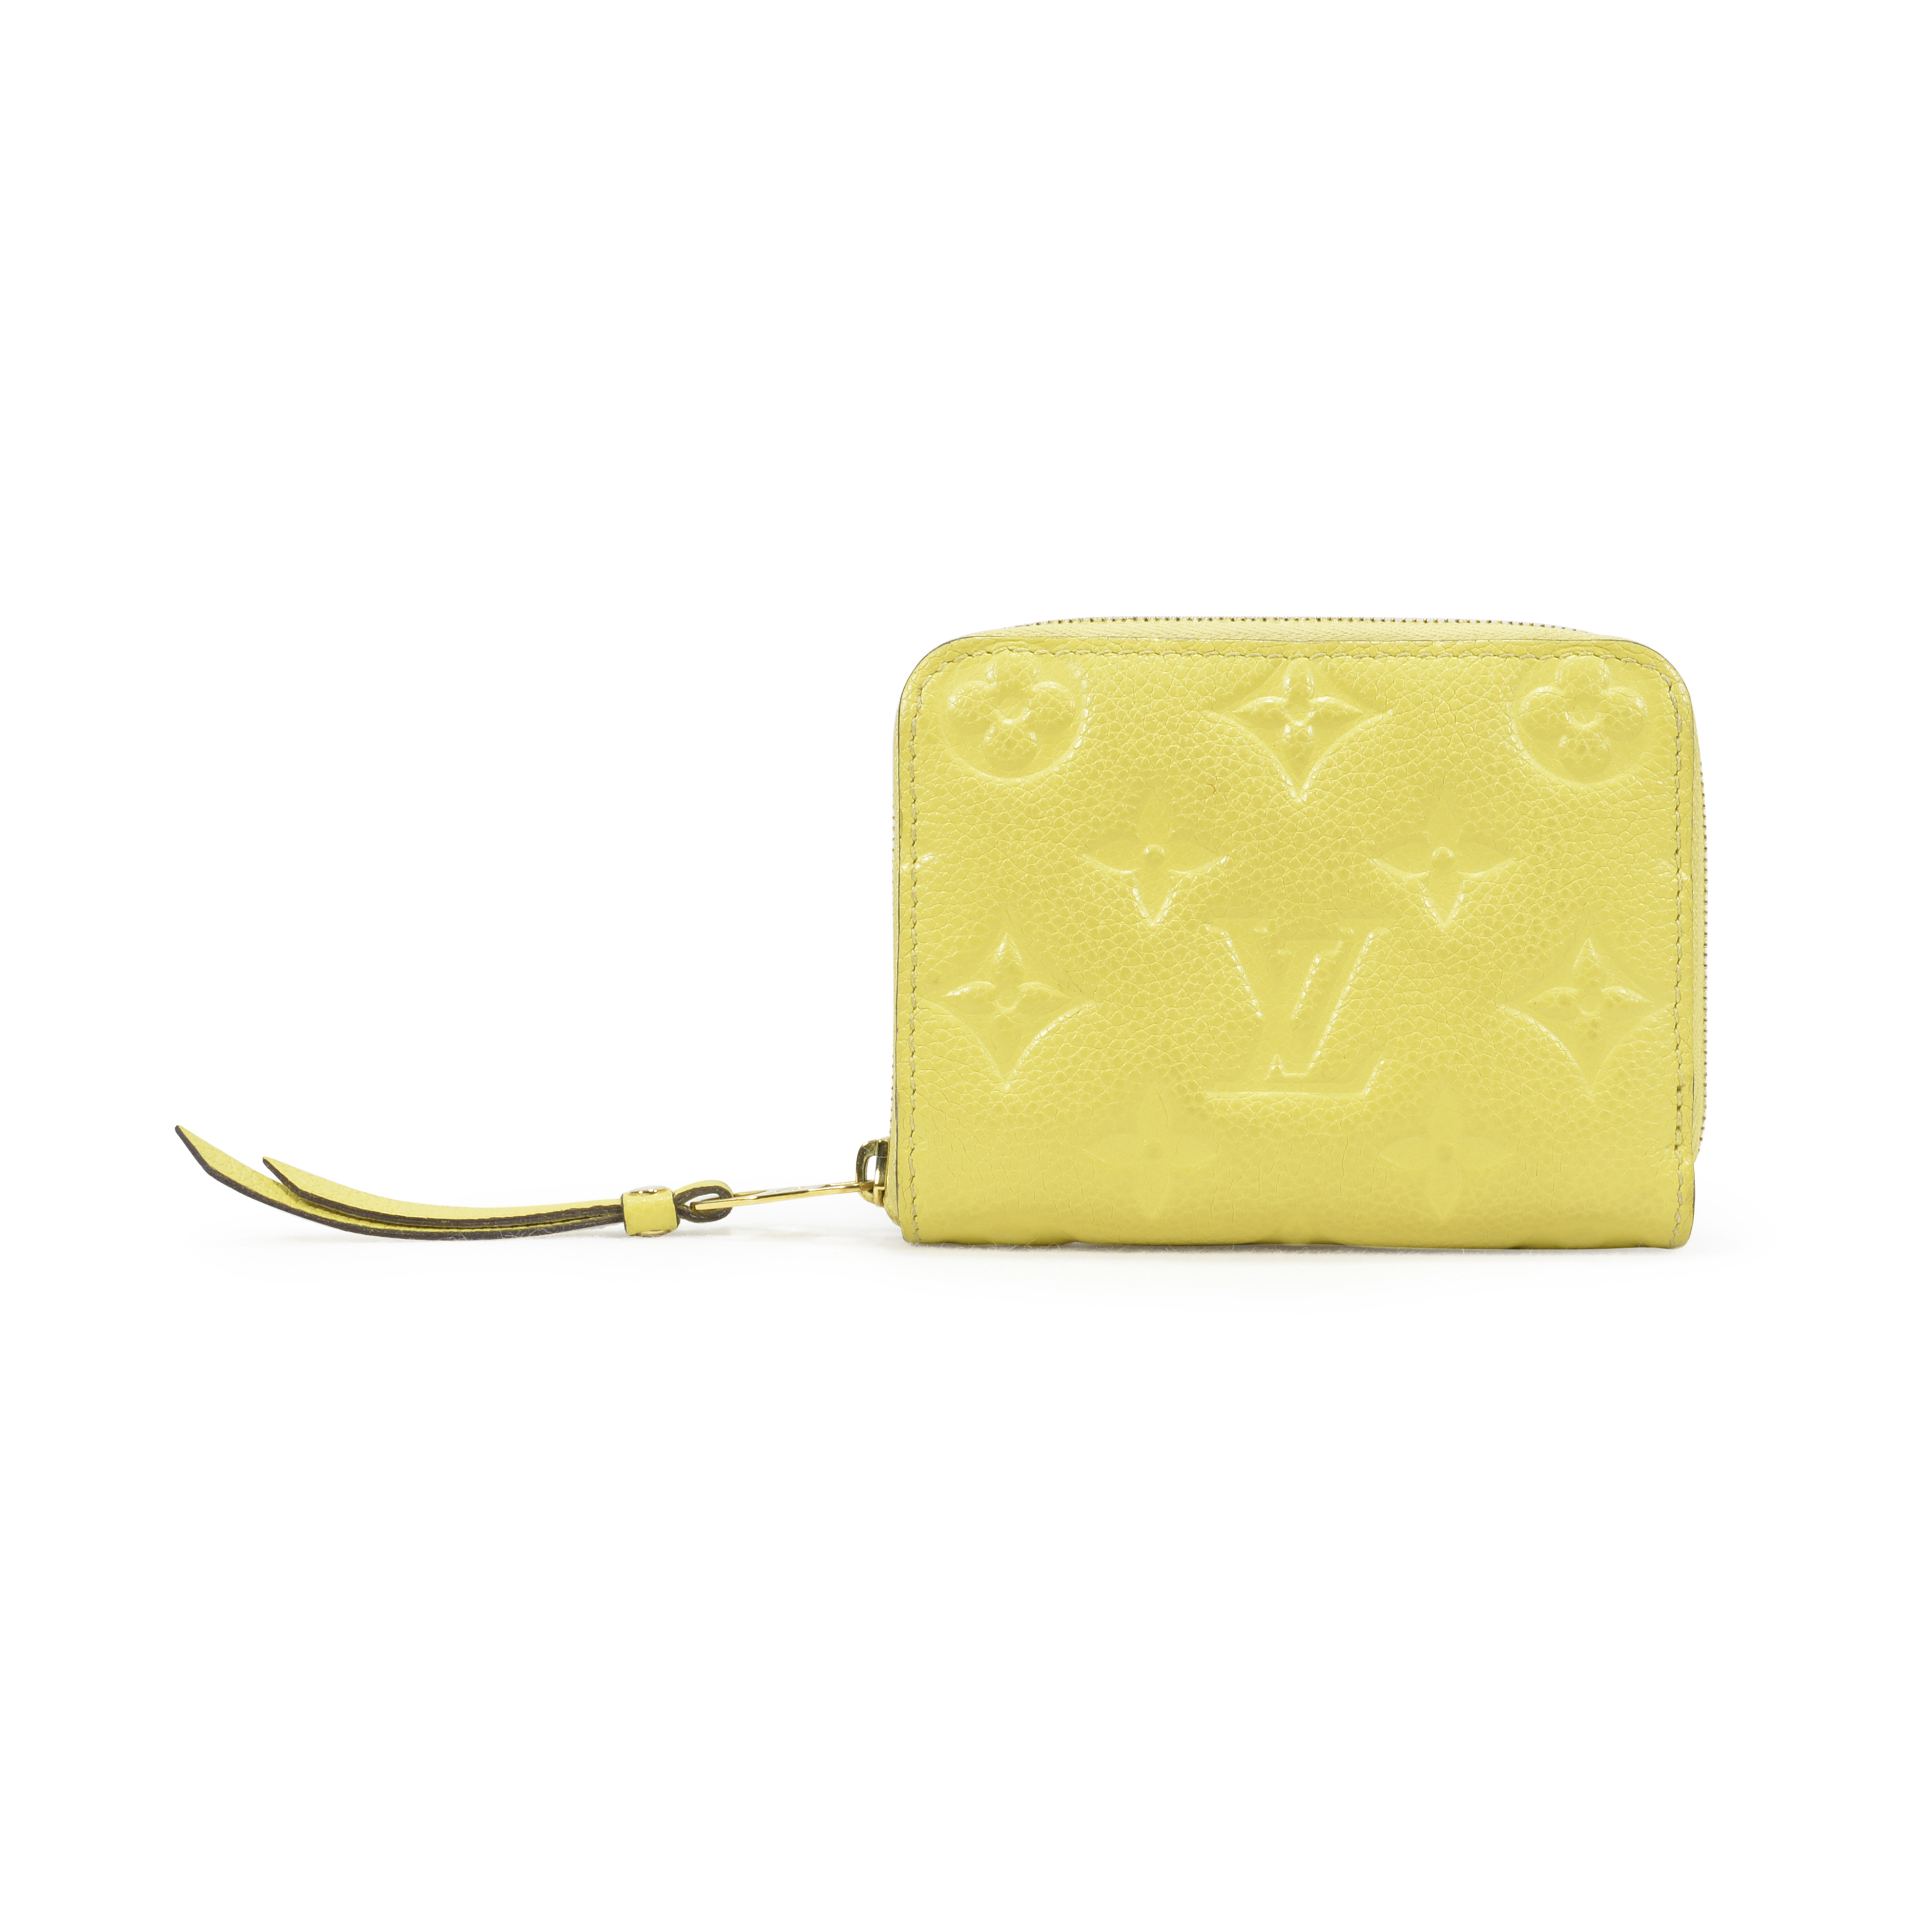 d69b85b52 Authentic Second Hand Louis Vuitton Zippy Coin Purse (PSS-350-00013) - THE  FIFTH COLLECTION